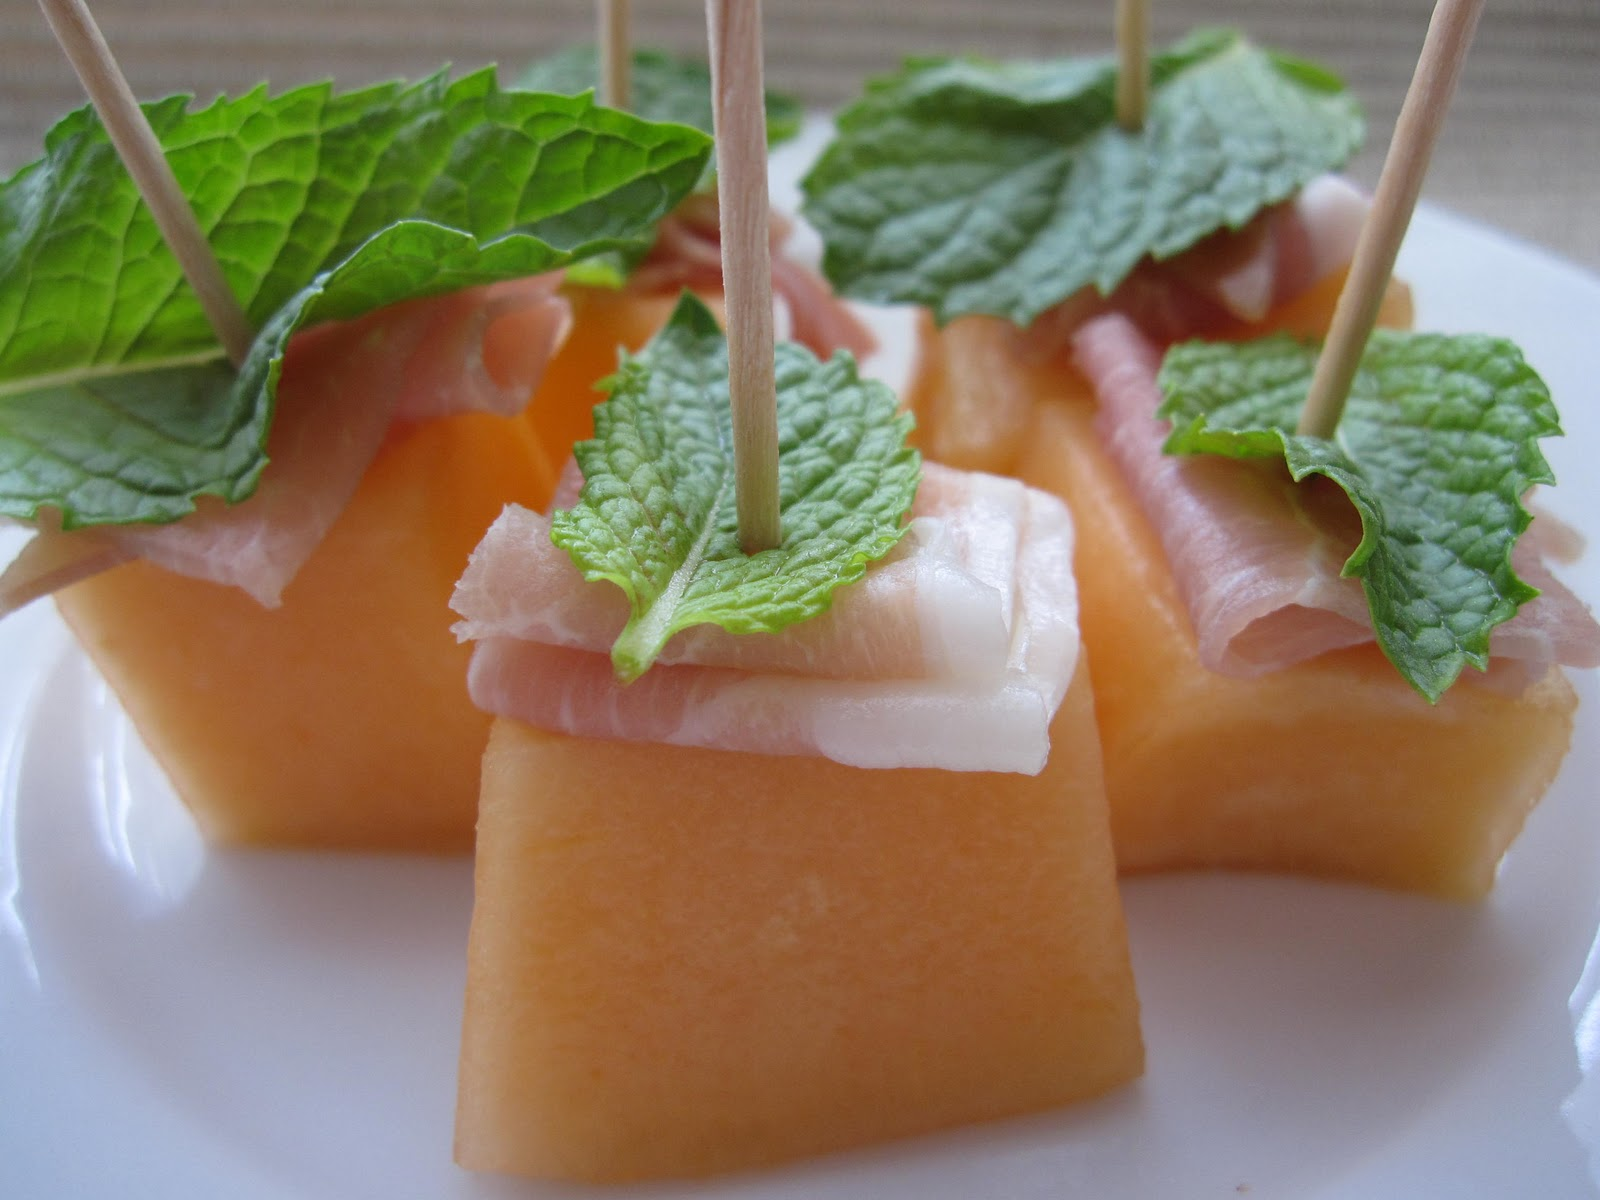 These easy summer appetizers and recipes are app-solutely perfect for all your warm-weather fetes. Still hungry? Check out our Summer Salmon Recipes and our Best Sangrias.